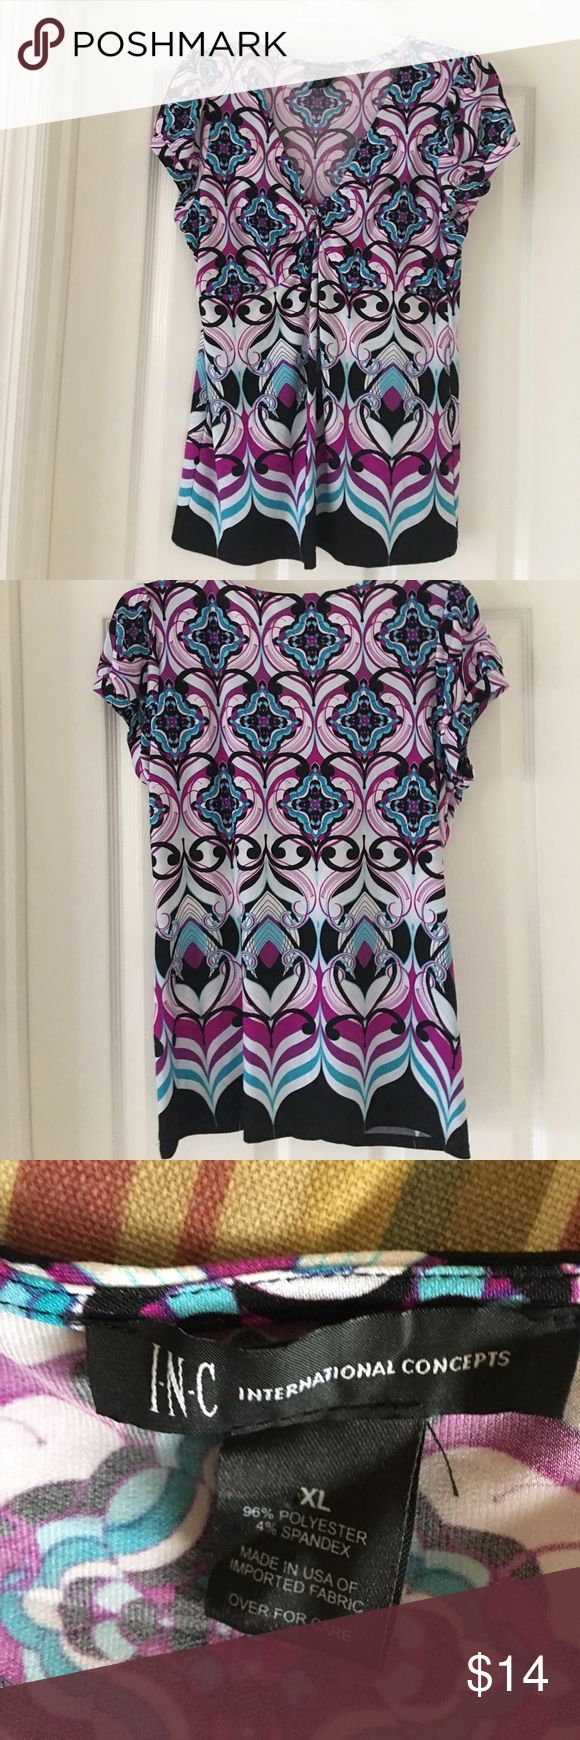 Inc.  Top Multi Color Top Size XL Inc. International Concepts by Macy's Top. Multi Color Short Sleeve,  V Neck. Looks great with Jeans or Shorts. EUC INC International Concepts Tops